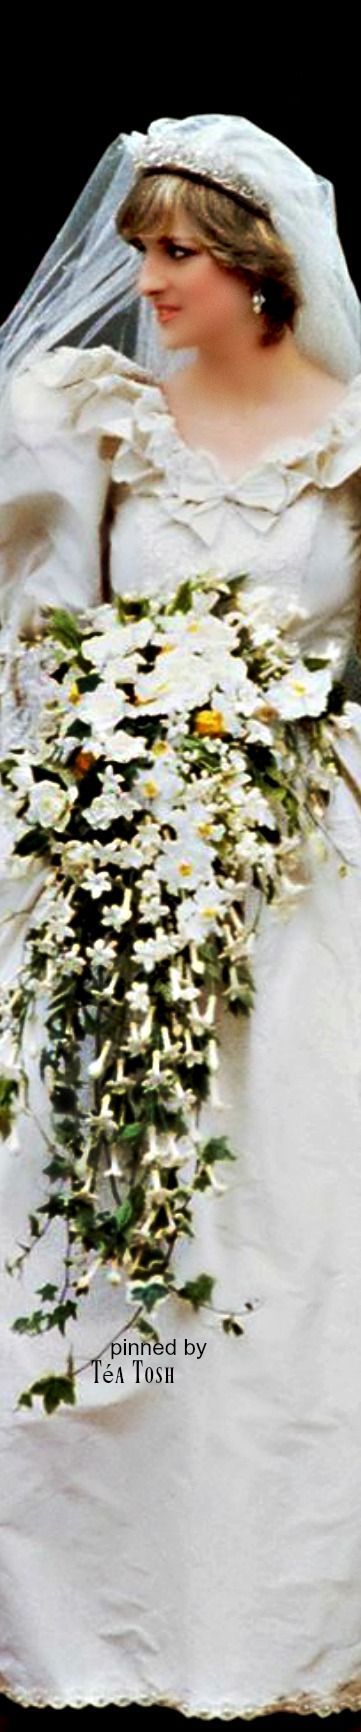 ❈Téa Tosh❈July 29, 1981: Lady Diana Spencer marries Prince Charles at St. Paul's Cathedral.